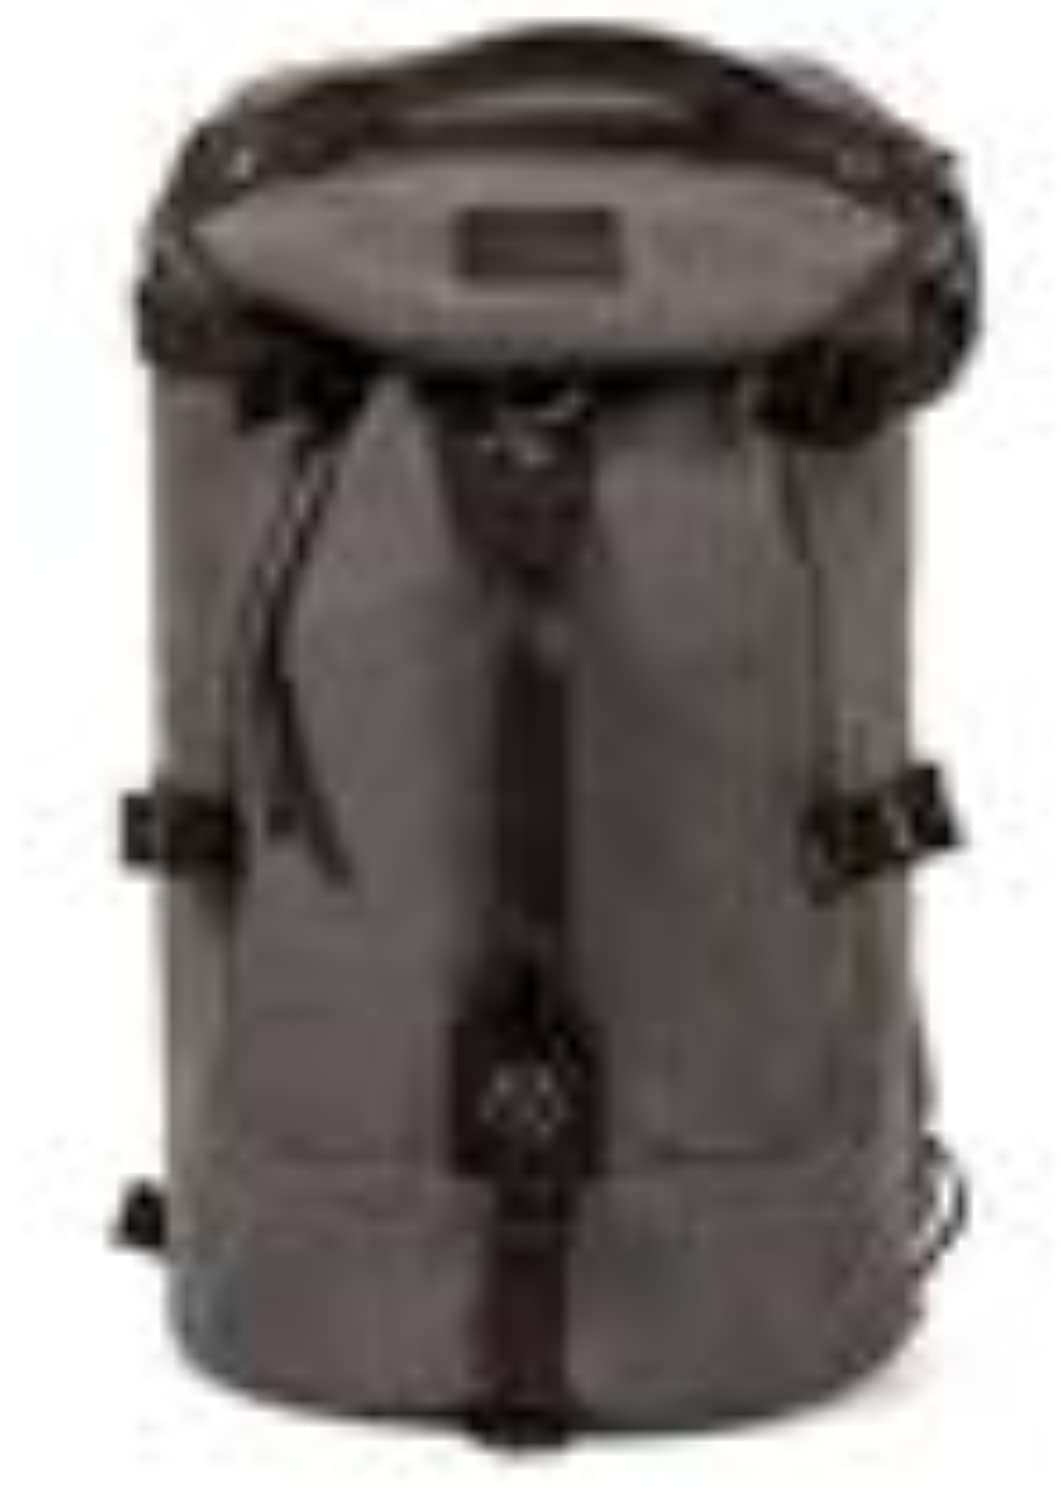 Backpack for Man,LargeCapacity Round Bucket Backpack, Canvas Bag Outdoor Travel Backpack